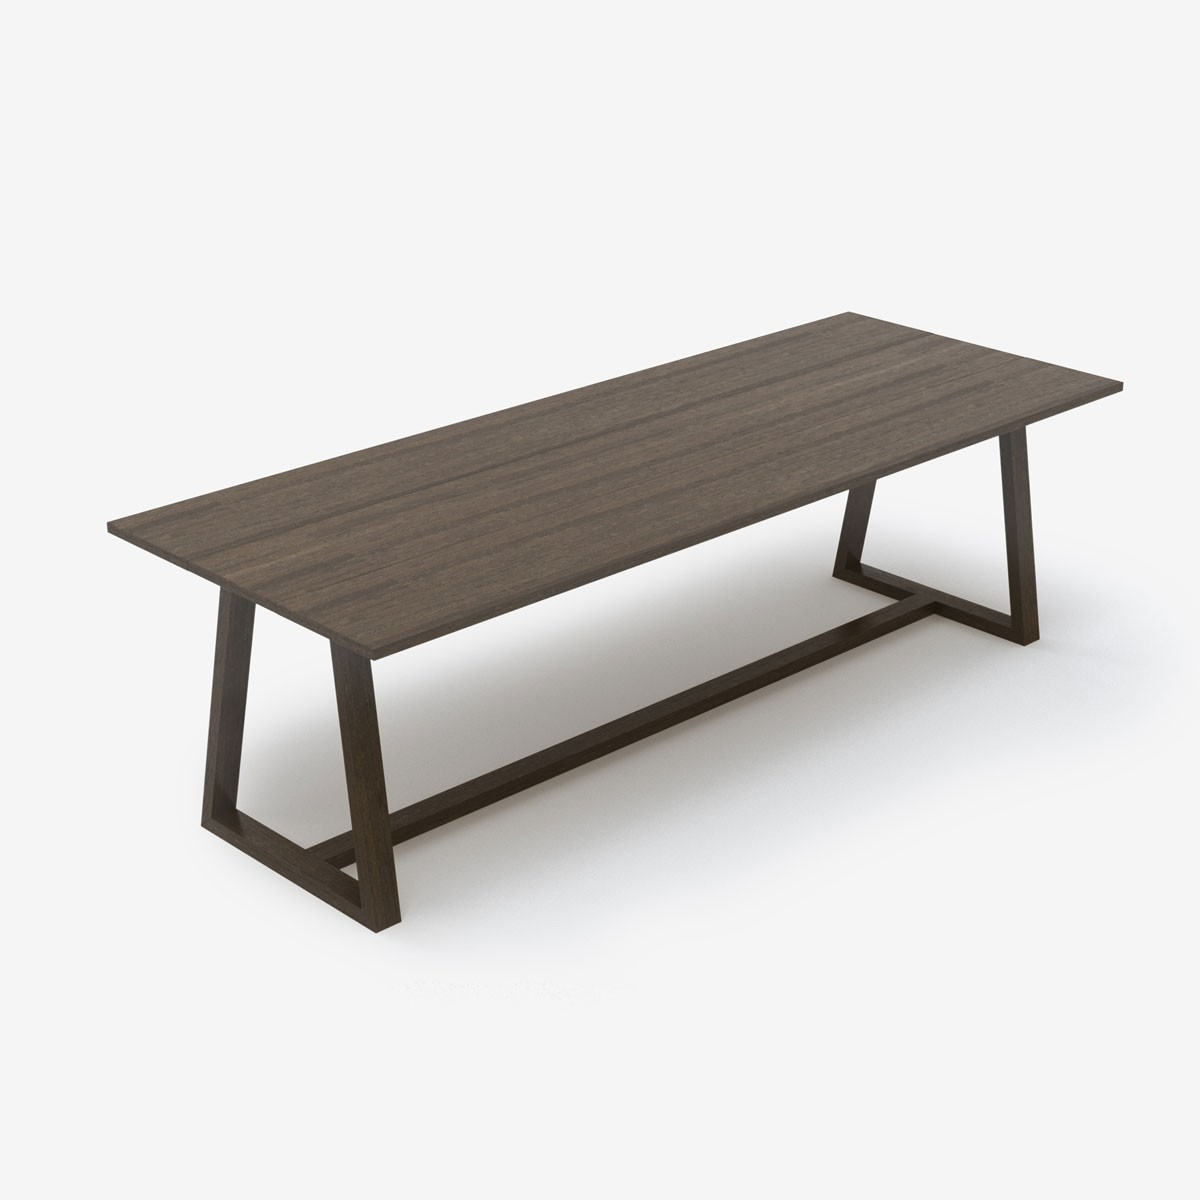 Image shows Studio Style Dining Table in Dark Grey/Brown Timber